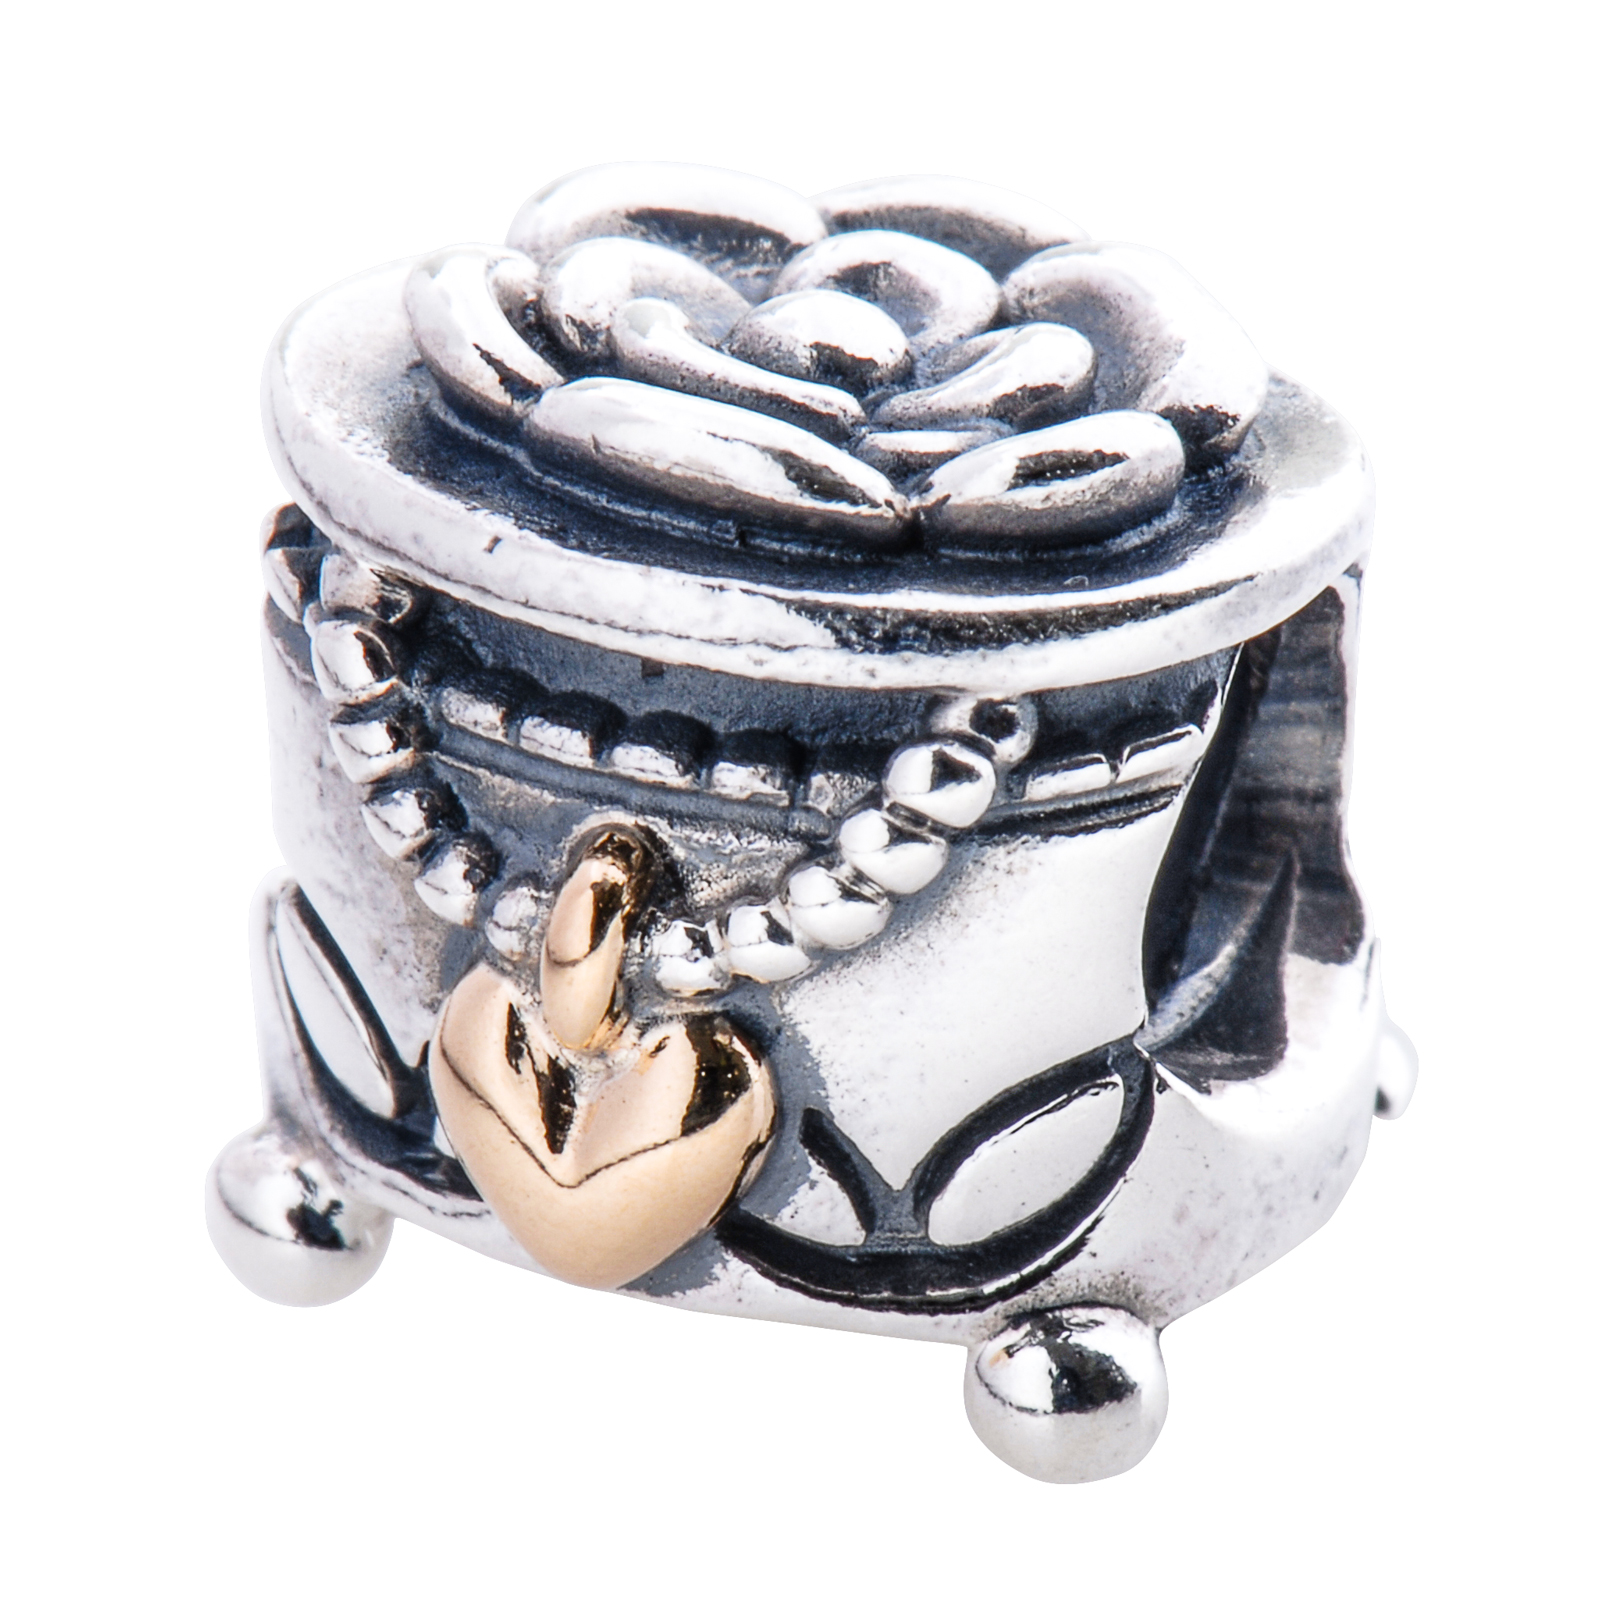 Pandora Jewelry Cloud: Pandora Jewelry Box Charm In 925 Sterling Silver, 791019